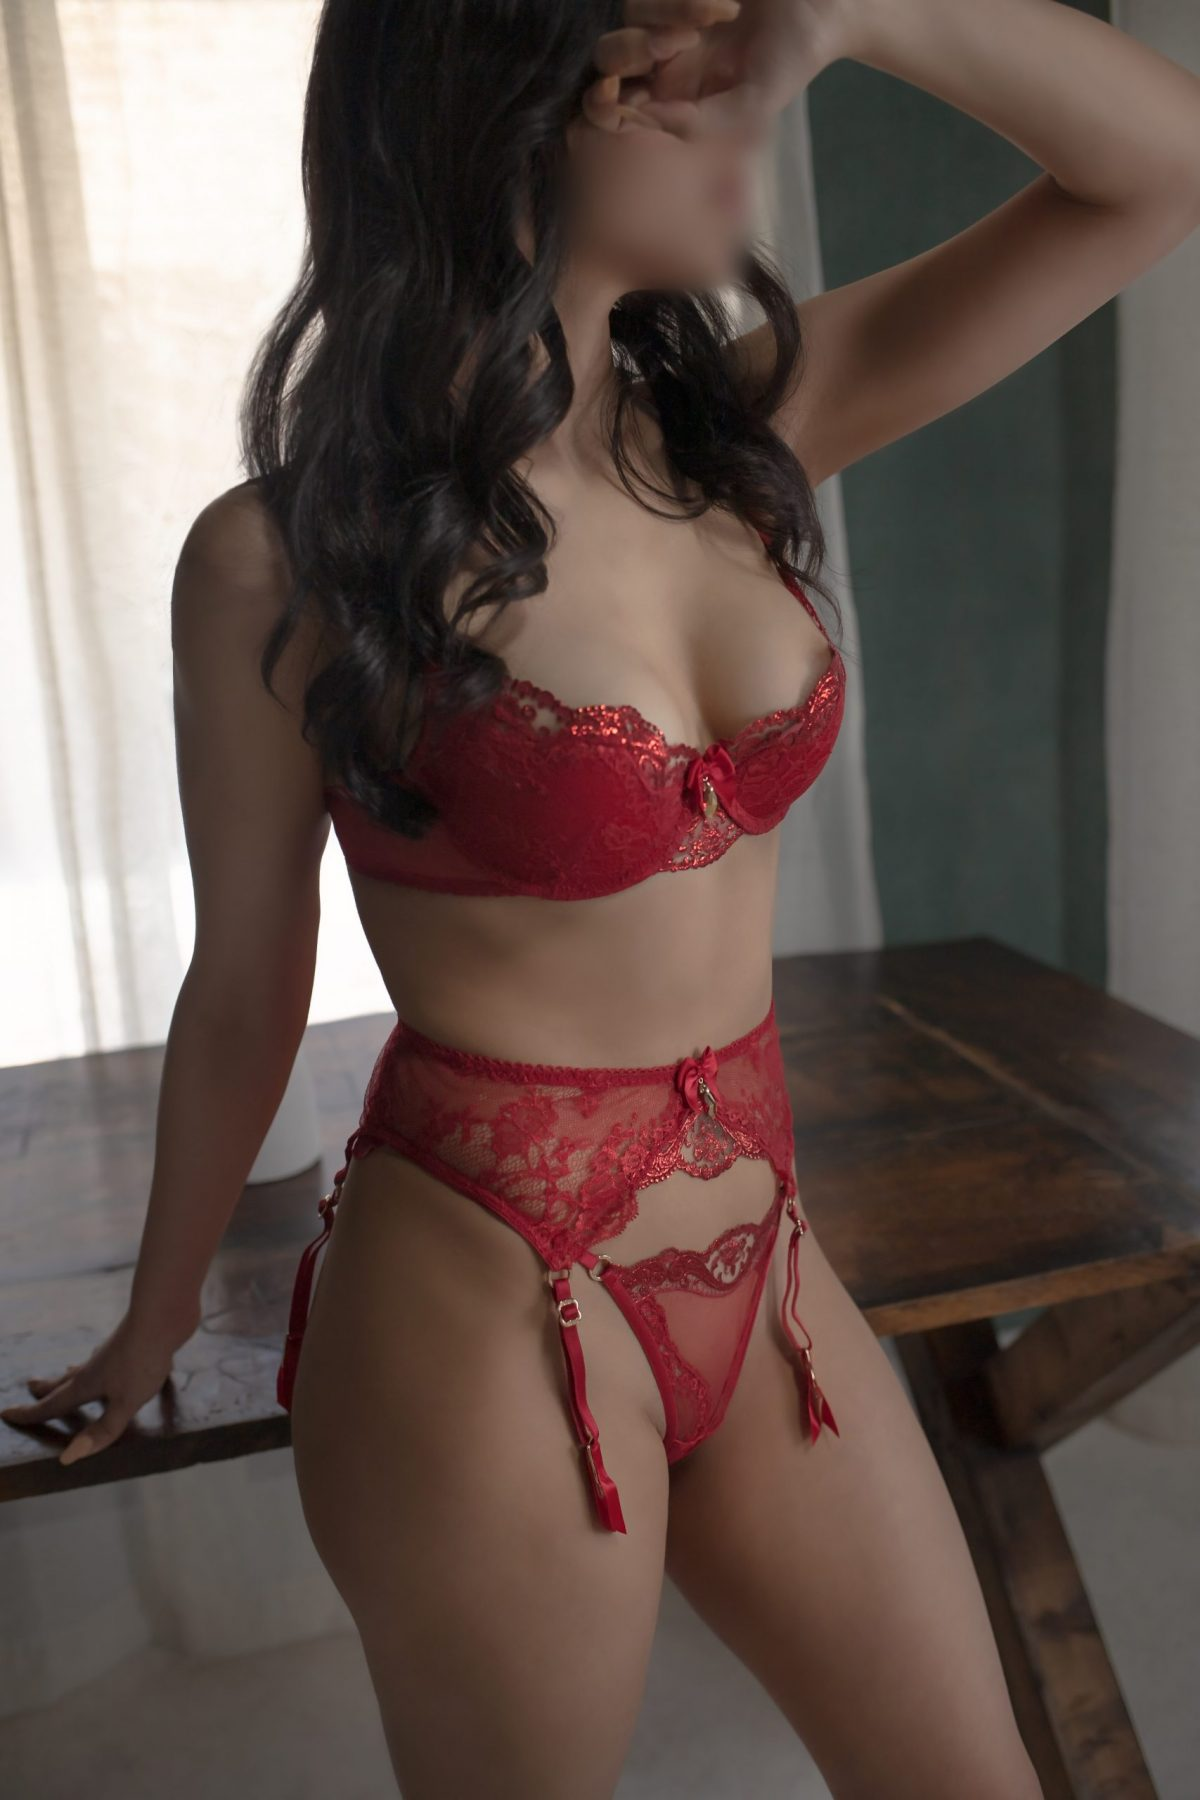 Toronto escorts companion upscale Maria Interests Disability-friendly Non-smoking Age Young Figure Slender Petite Breasts Natural Hair Brunette Ethnicity Latina Tattoos None Arrival New Photos New